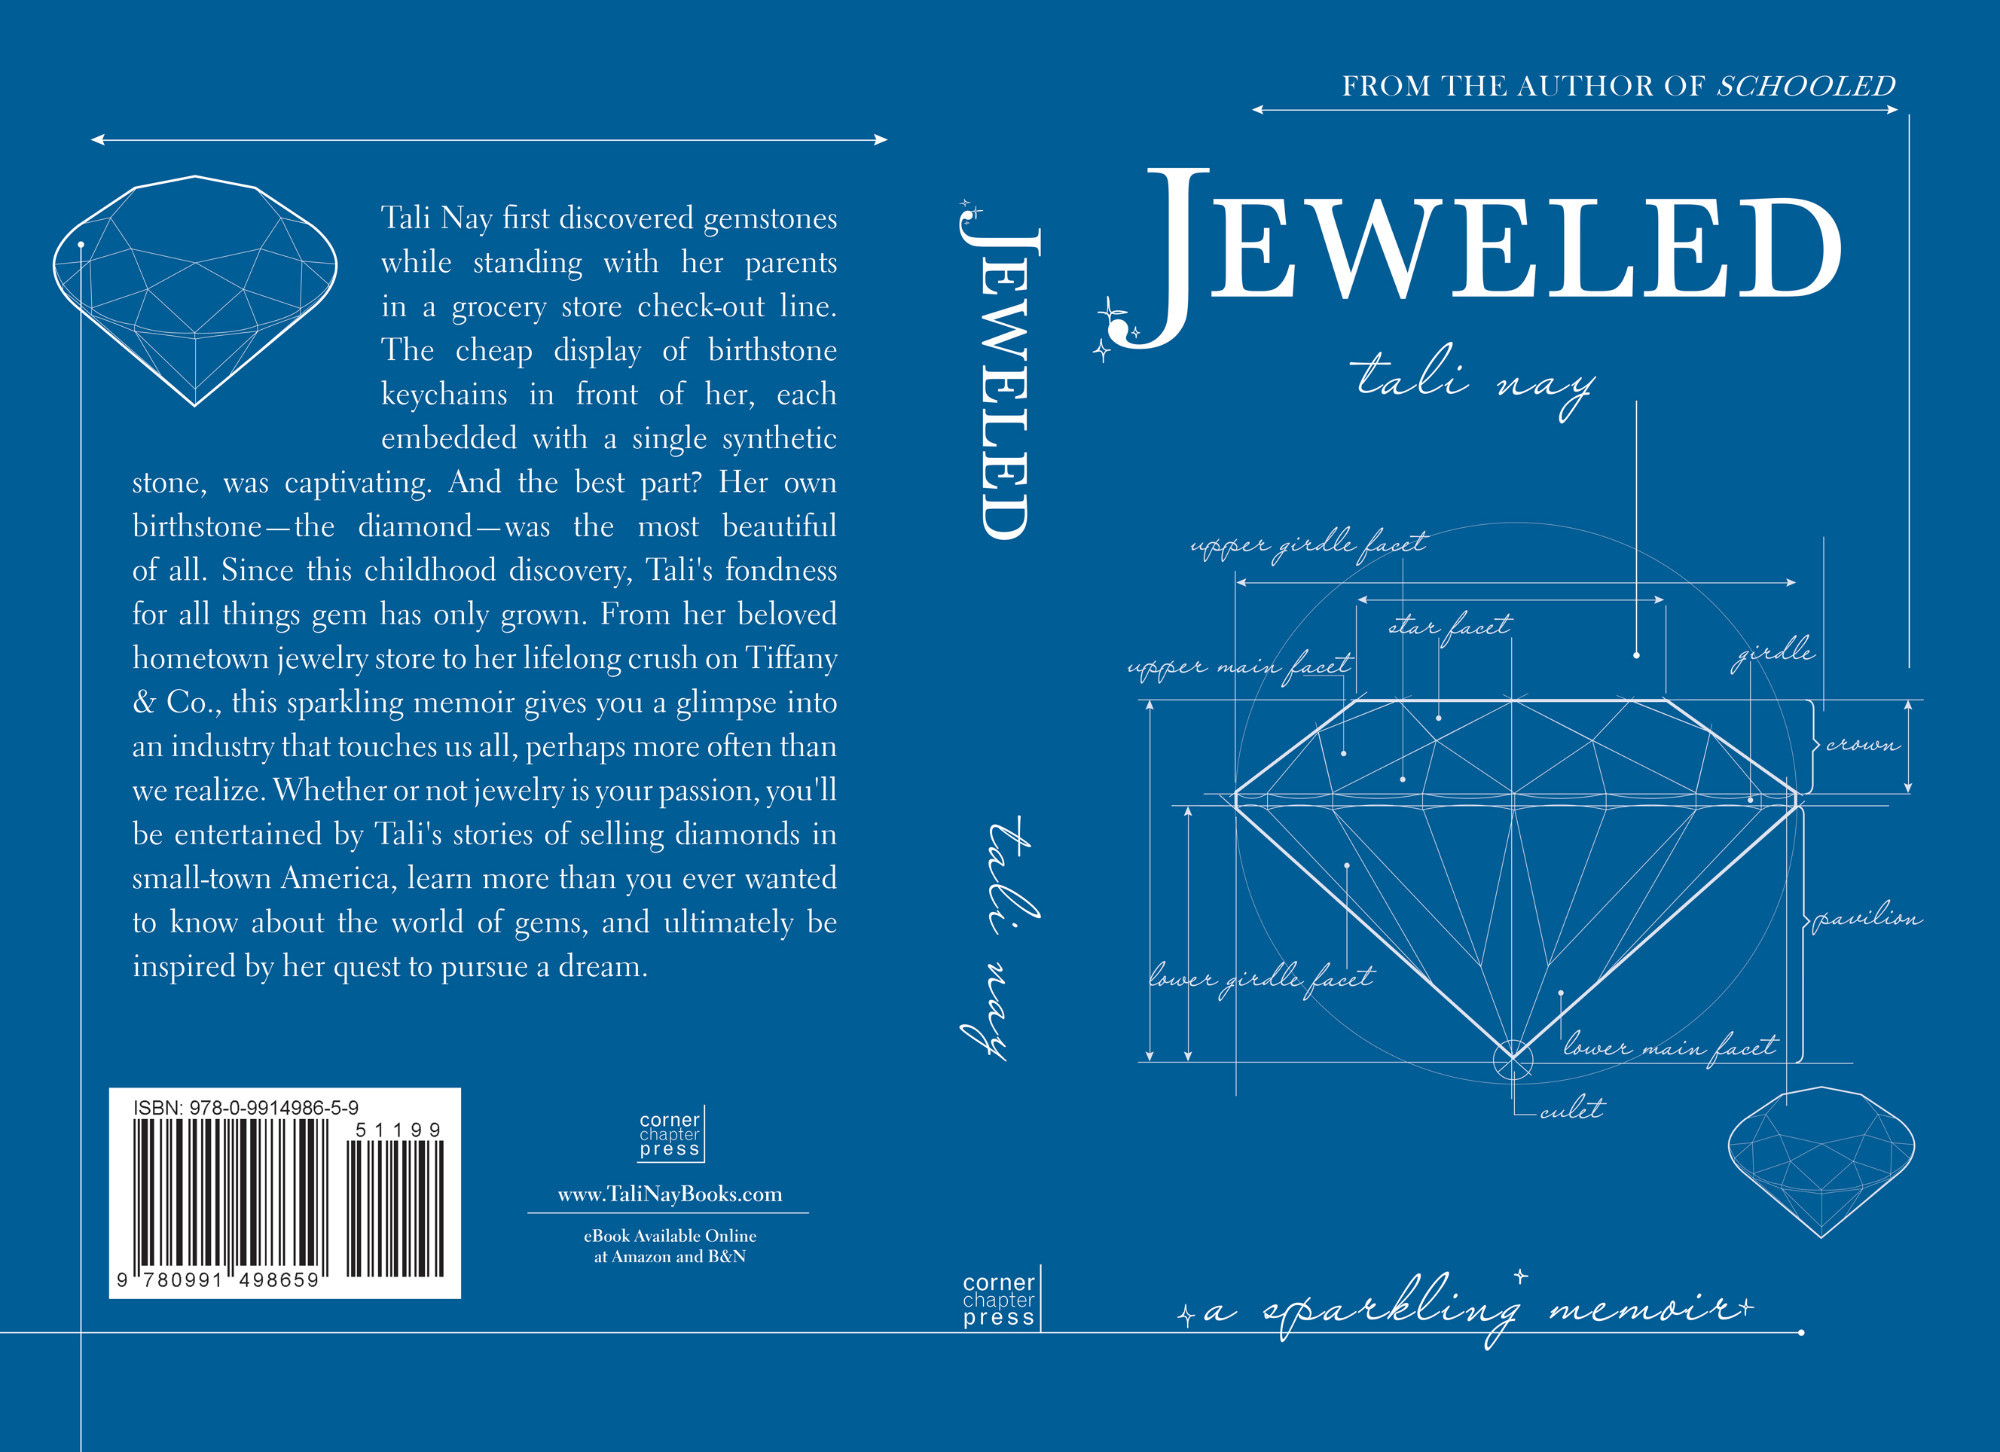 TN_Jeweled_CoverSpread_Final_41614_599-169.jpg